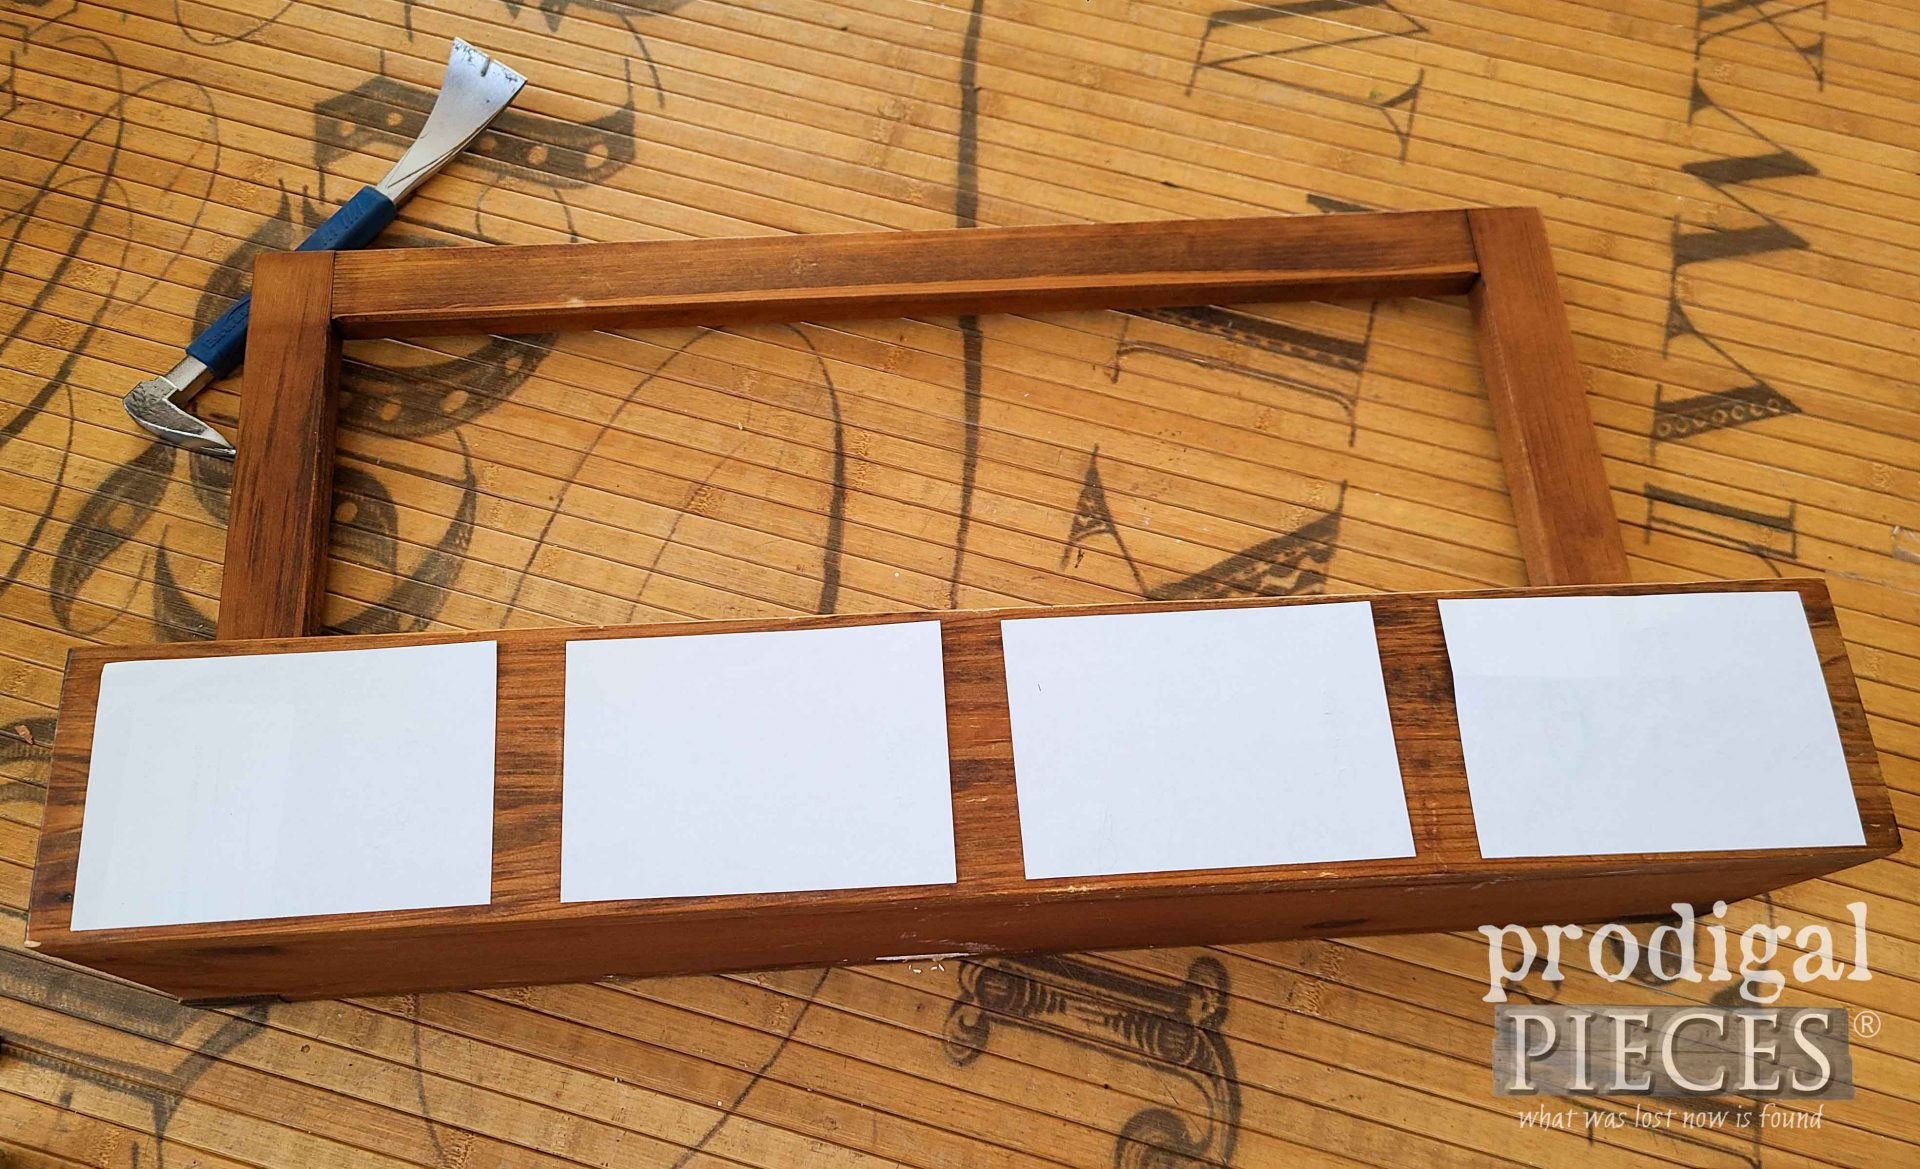 Apothecary Wall Box Template | prodigalpieces.com